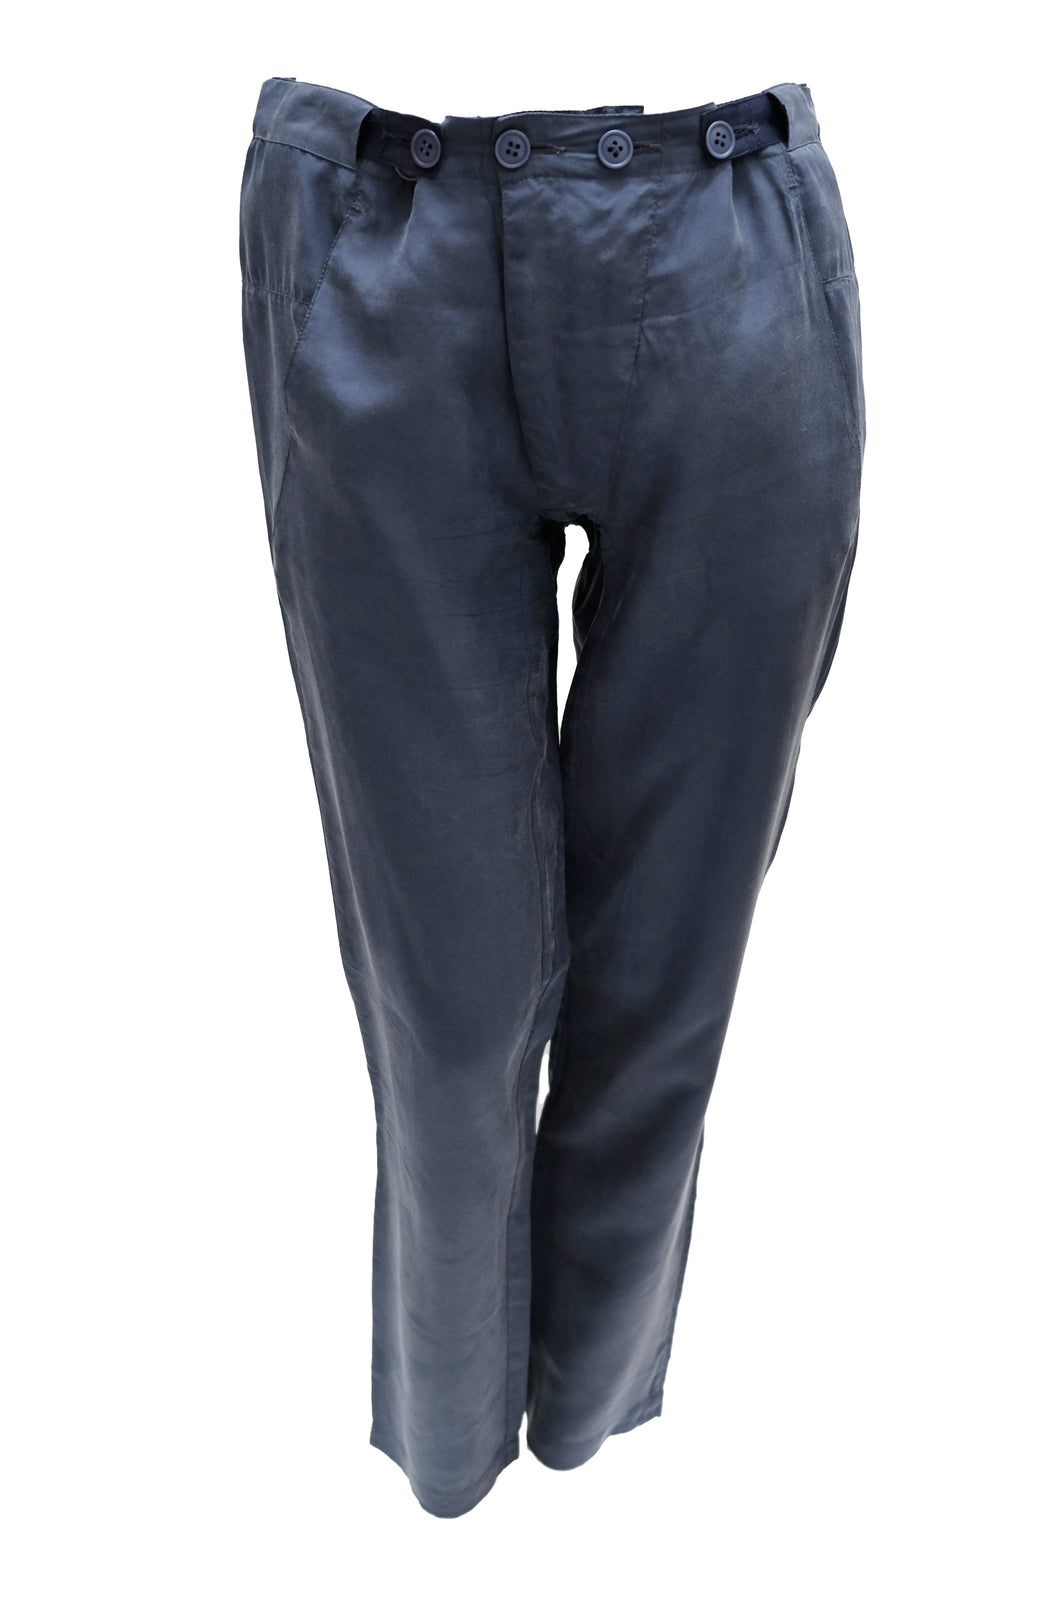 Martin Margiela Button Waist Trousers in Navy Blue Silk, UK12